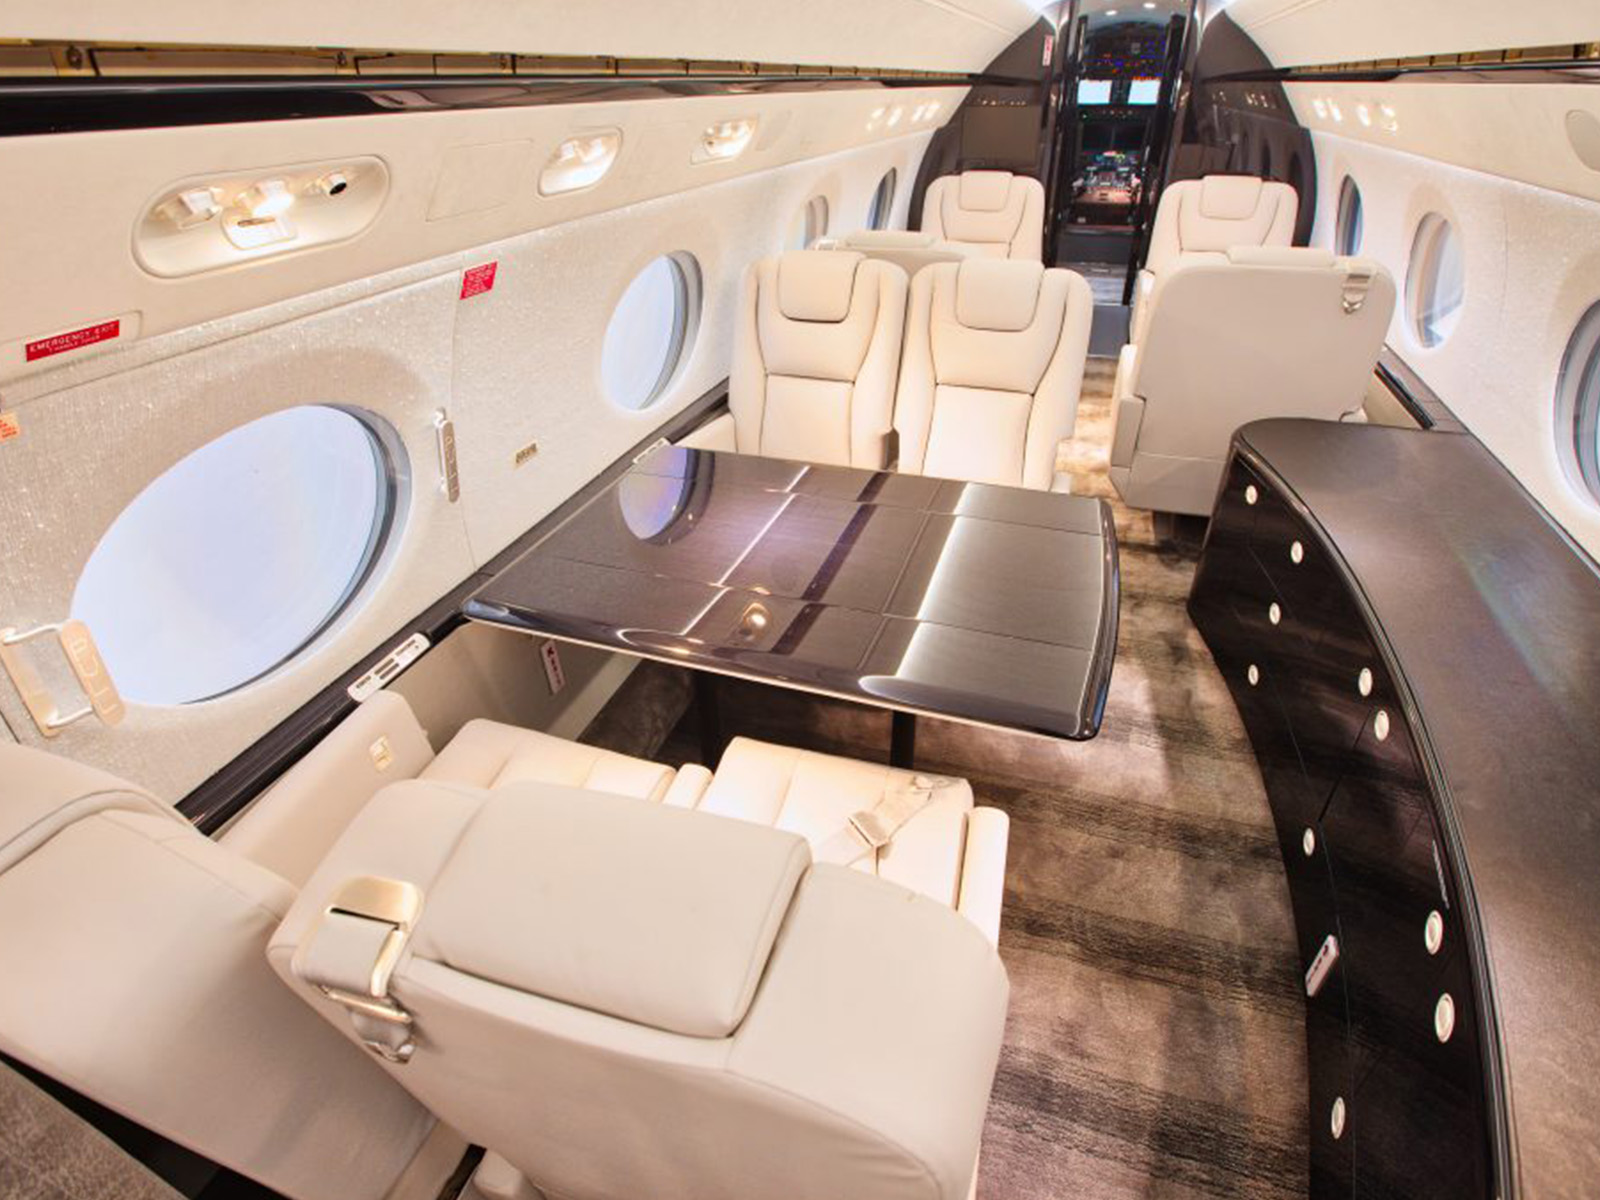 aircraft cabin lighting and seating